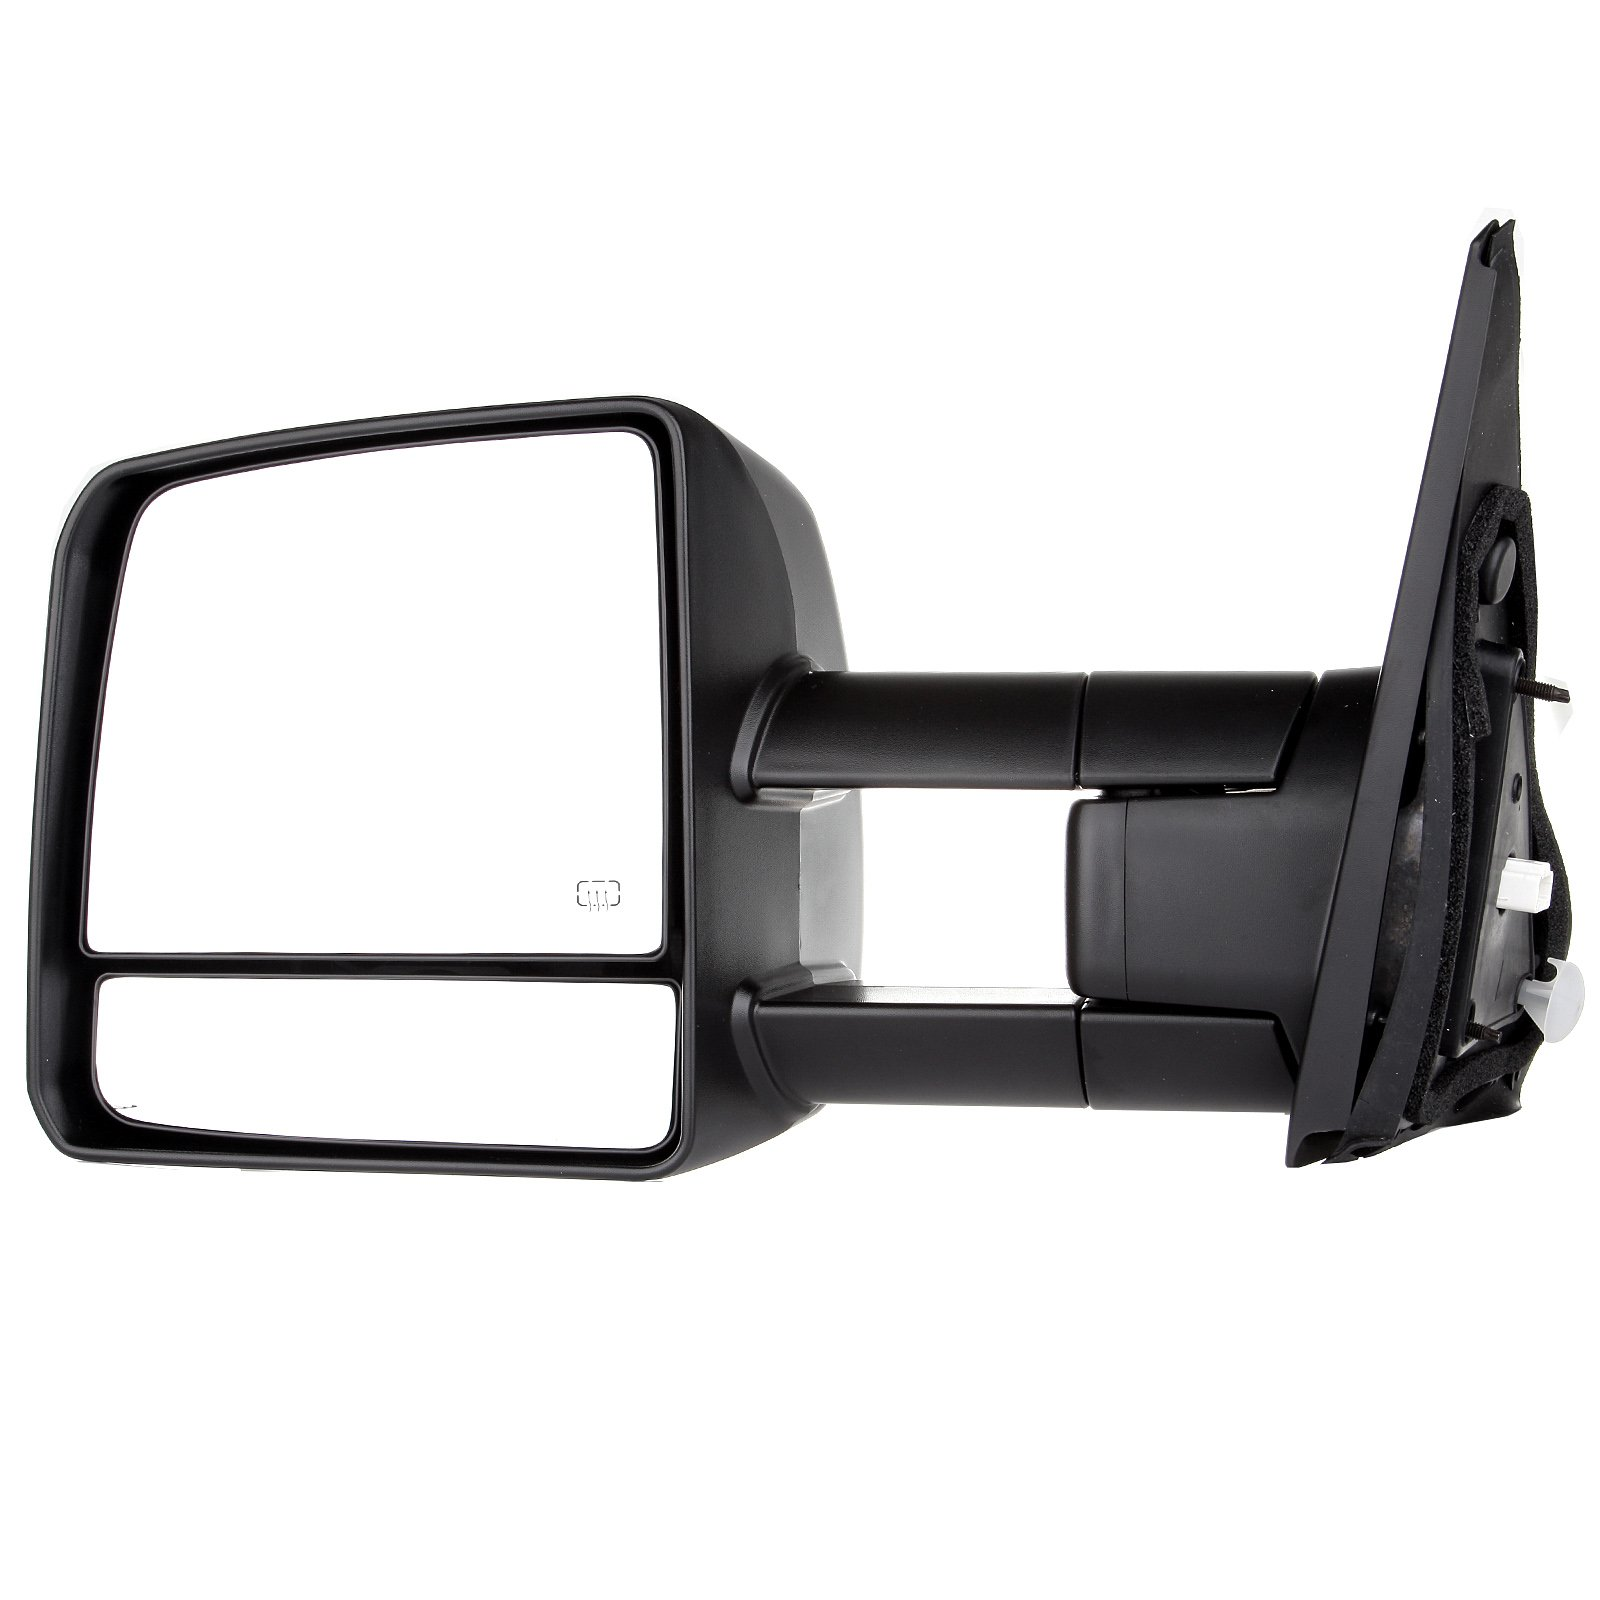 SCITOO fit Toyota Towing Mirrors Rear View Mirrors fit 2007-2016 Toyota Tundra Truck Larger Glass Power Control, Heated Turn Signal Manual Extending Folding (black) by SCITOO (Image #2)